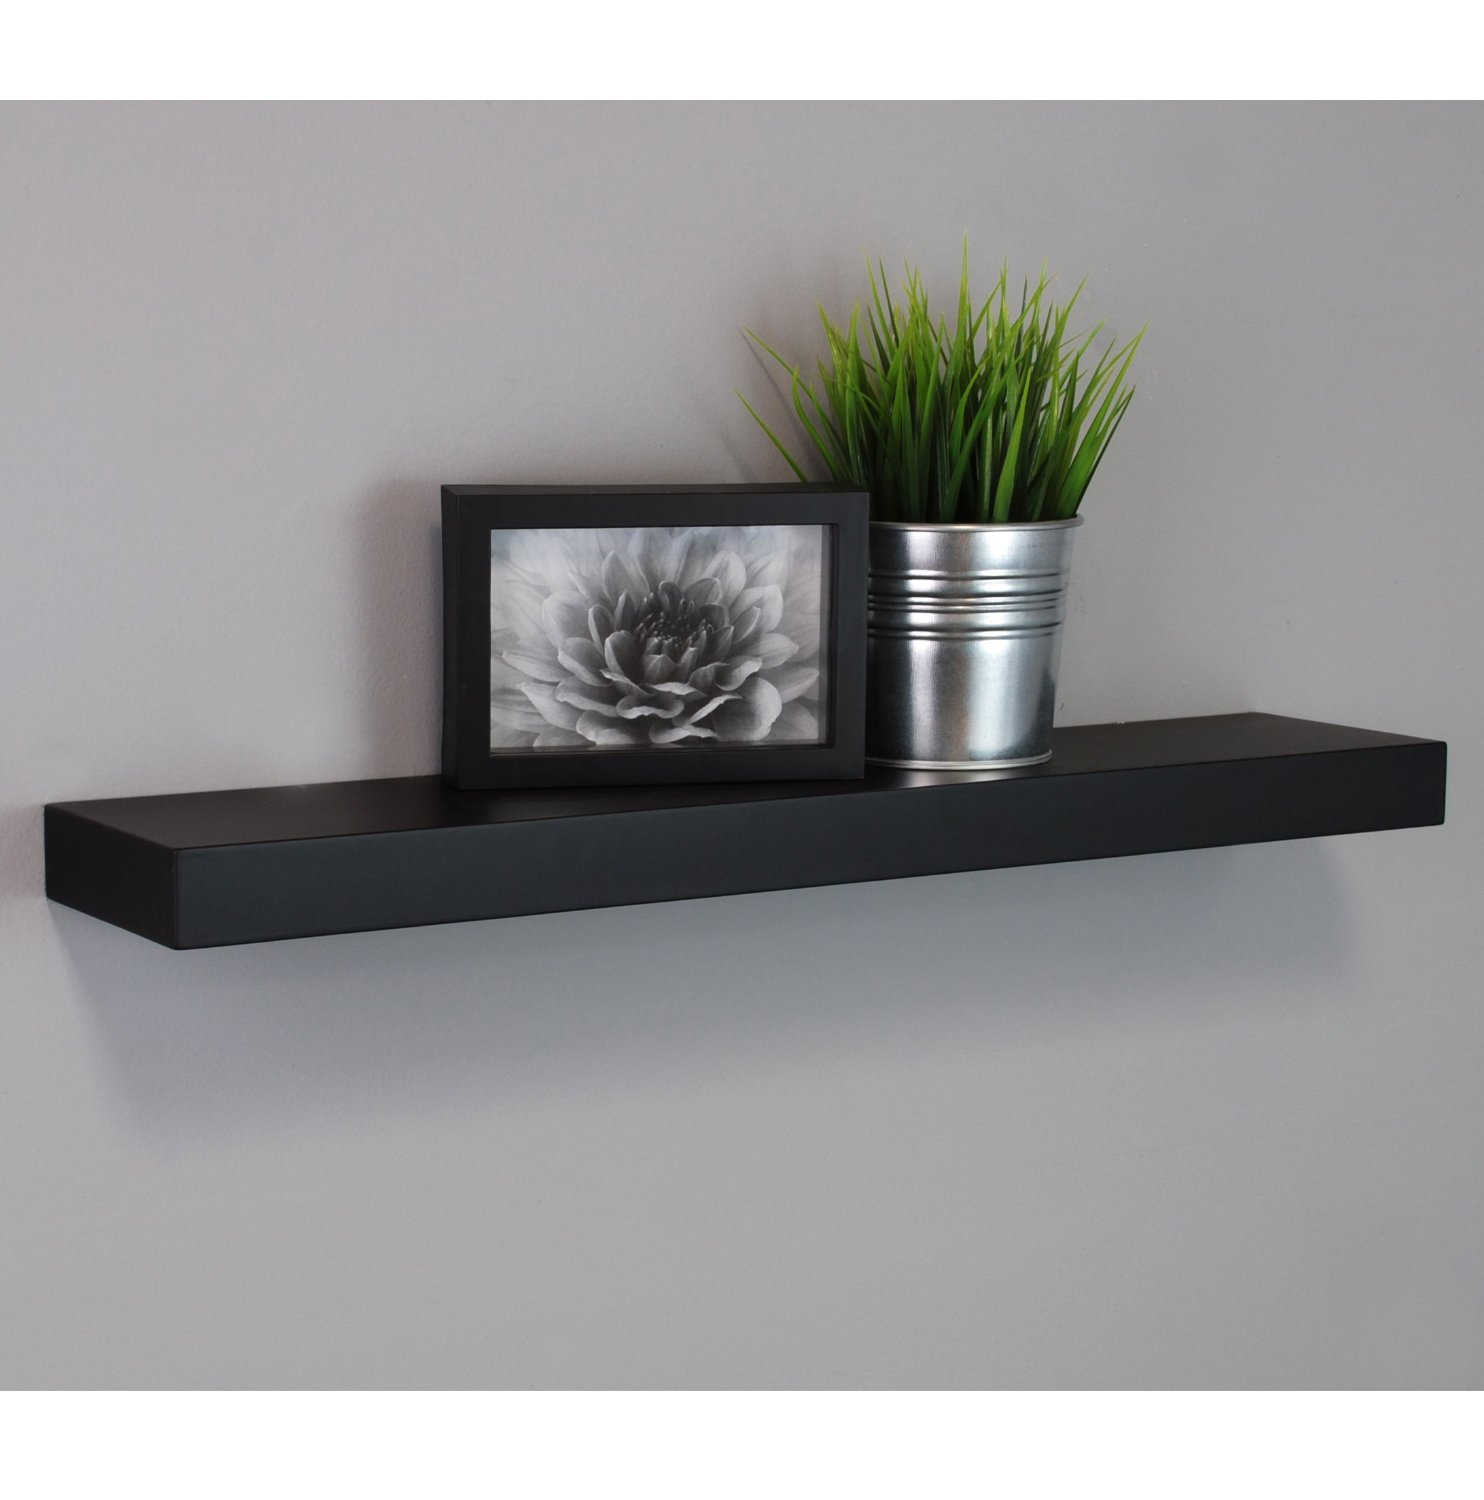 Kiera Grace Maine Wall Shelf/Floating Ledge, 24 Inch - Black